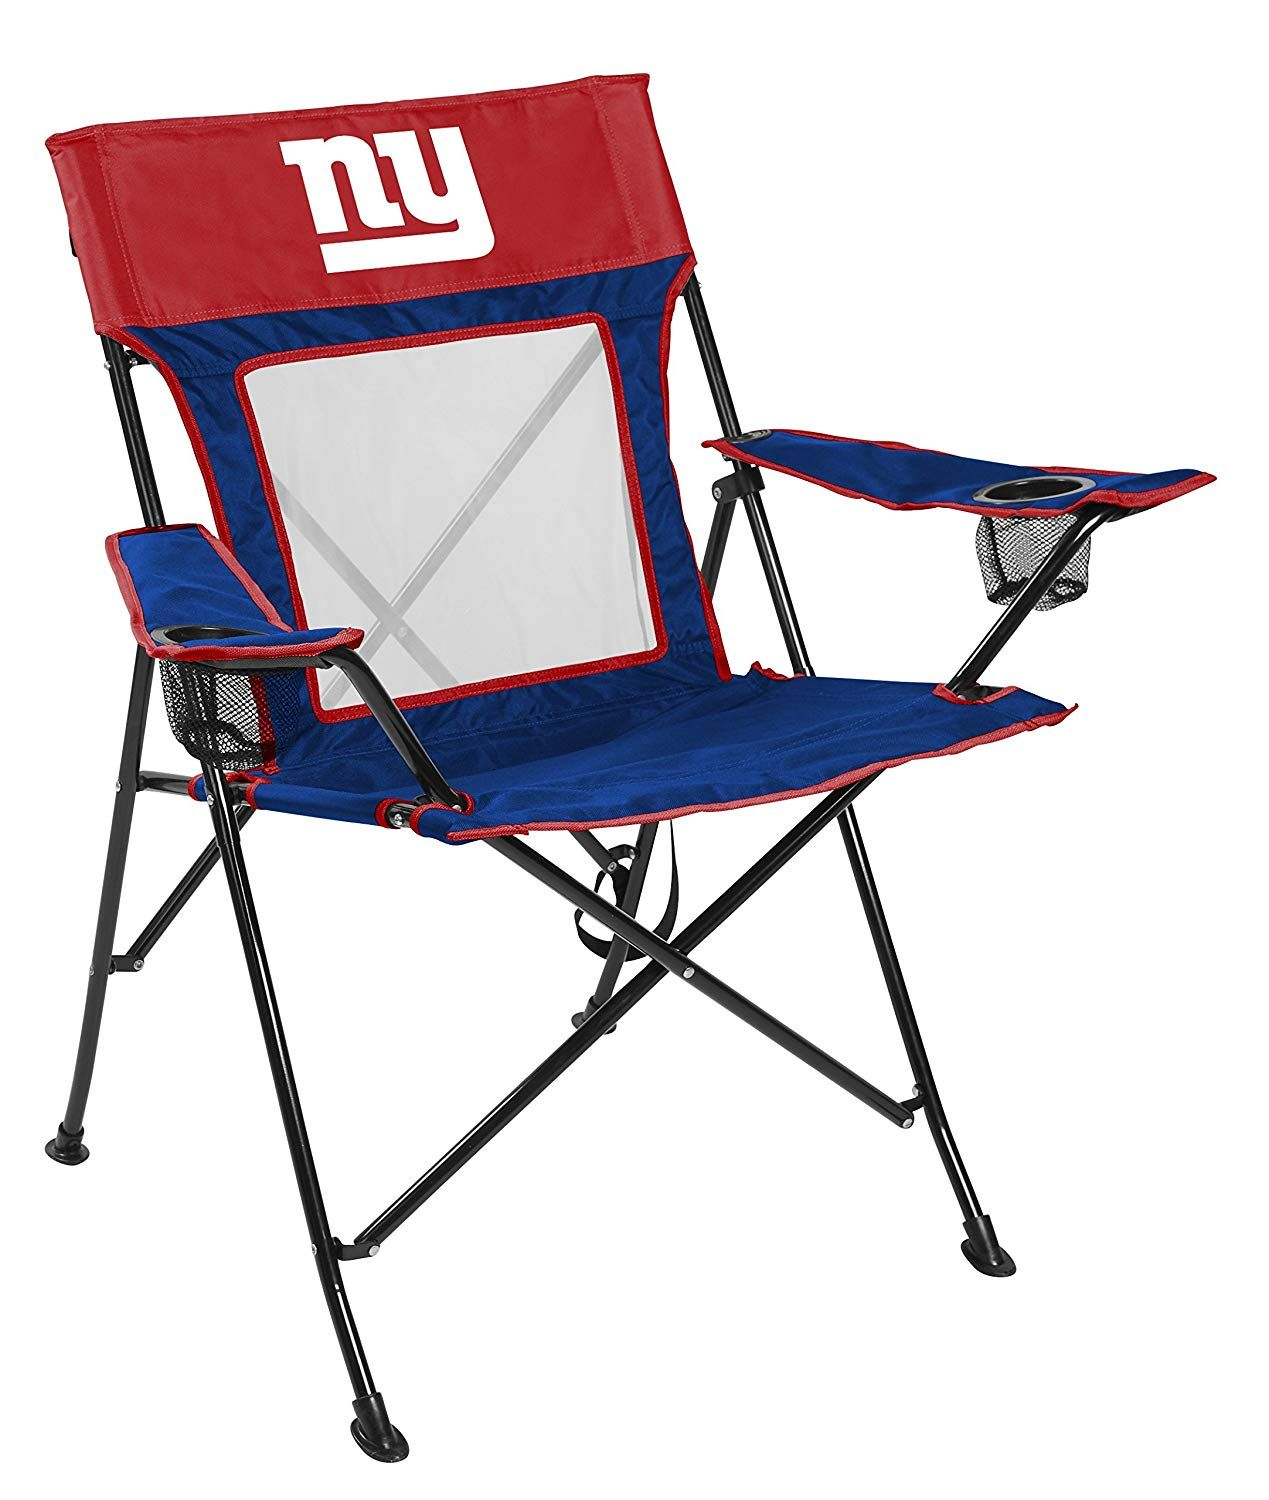 Nfl Team Chair Perfect For Any Nfl Fan All Teams